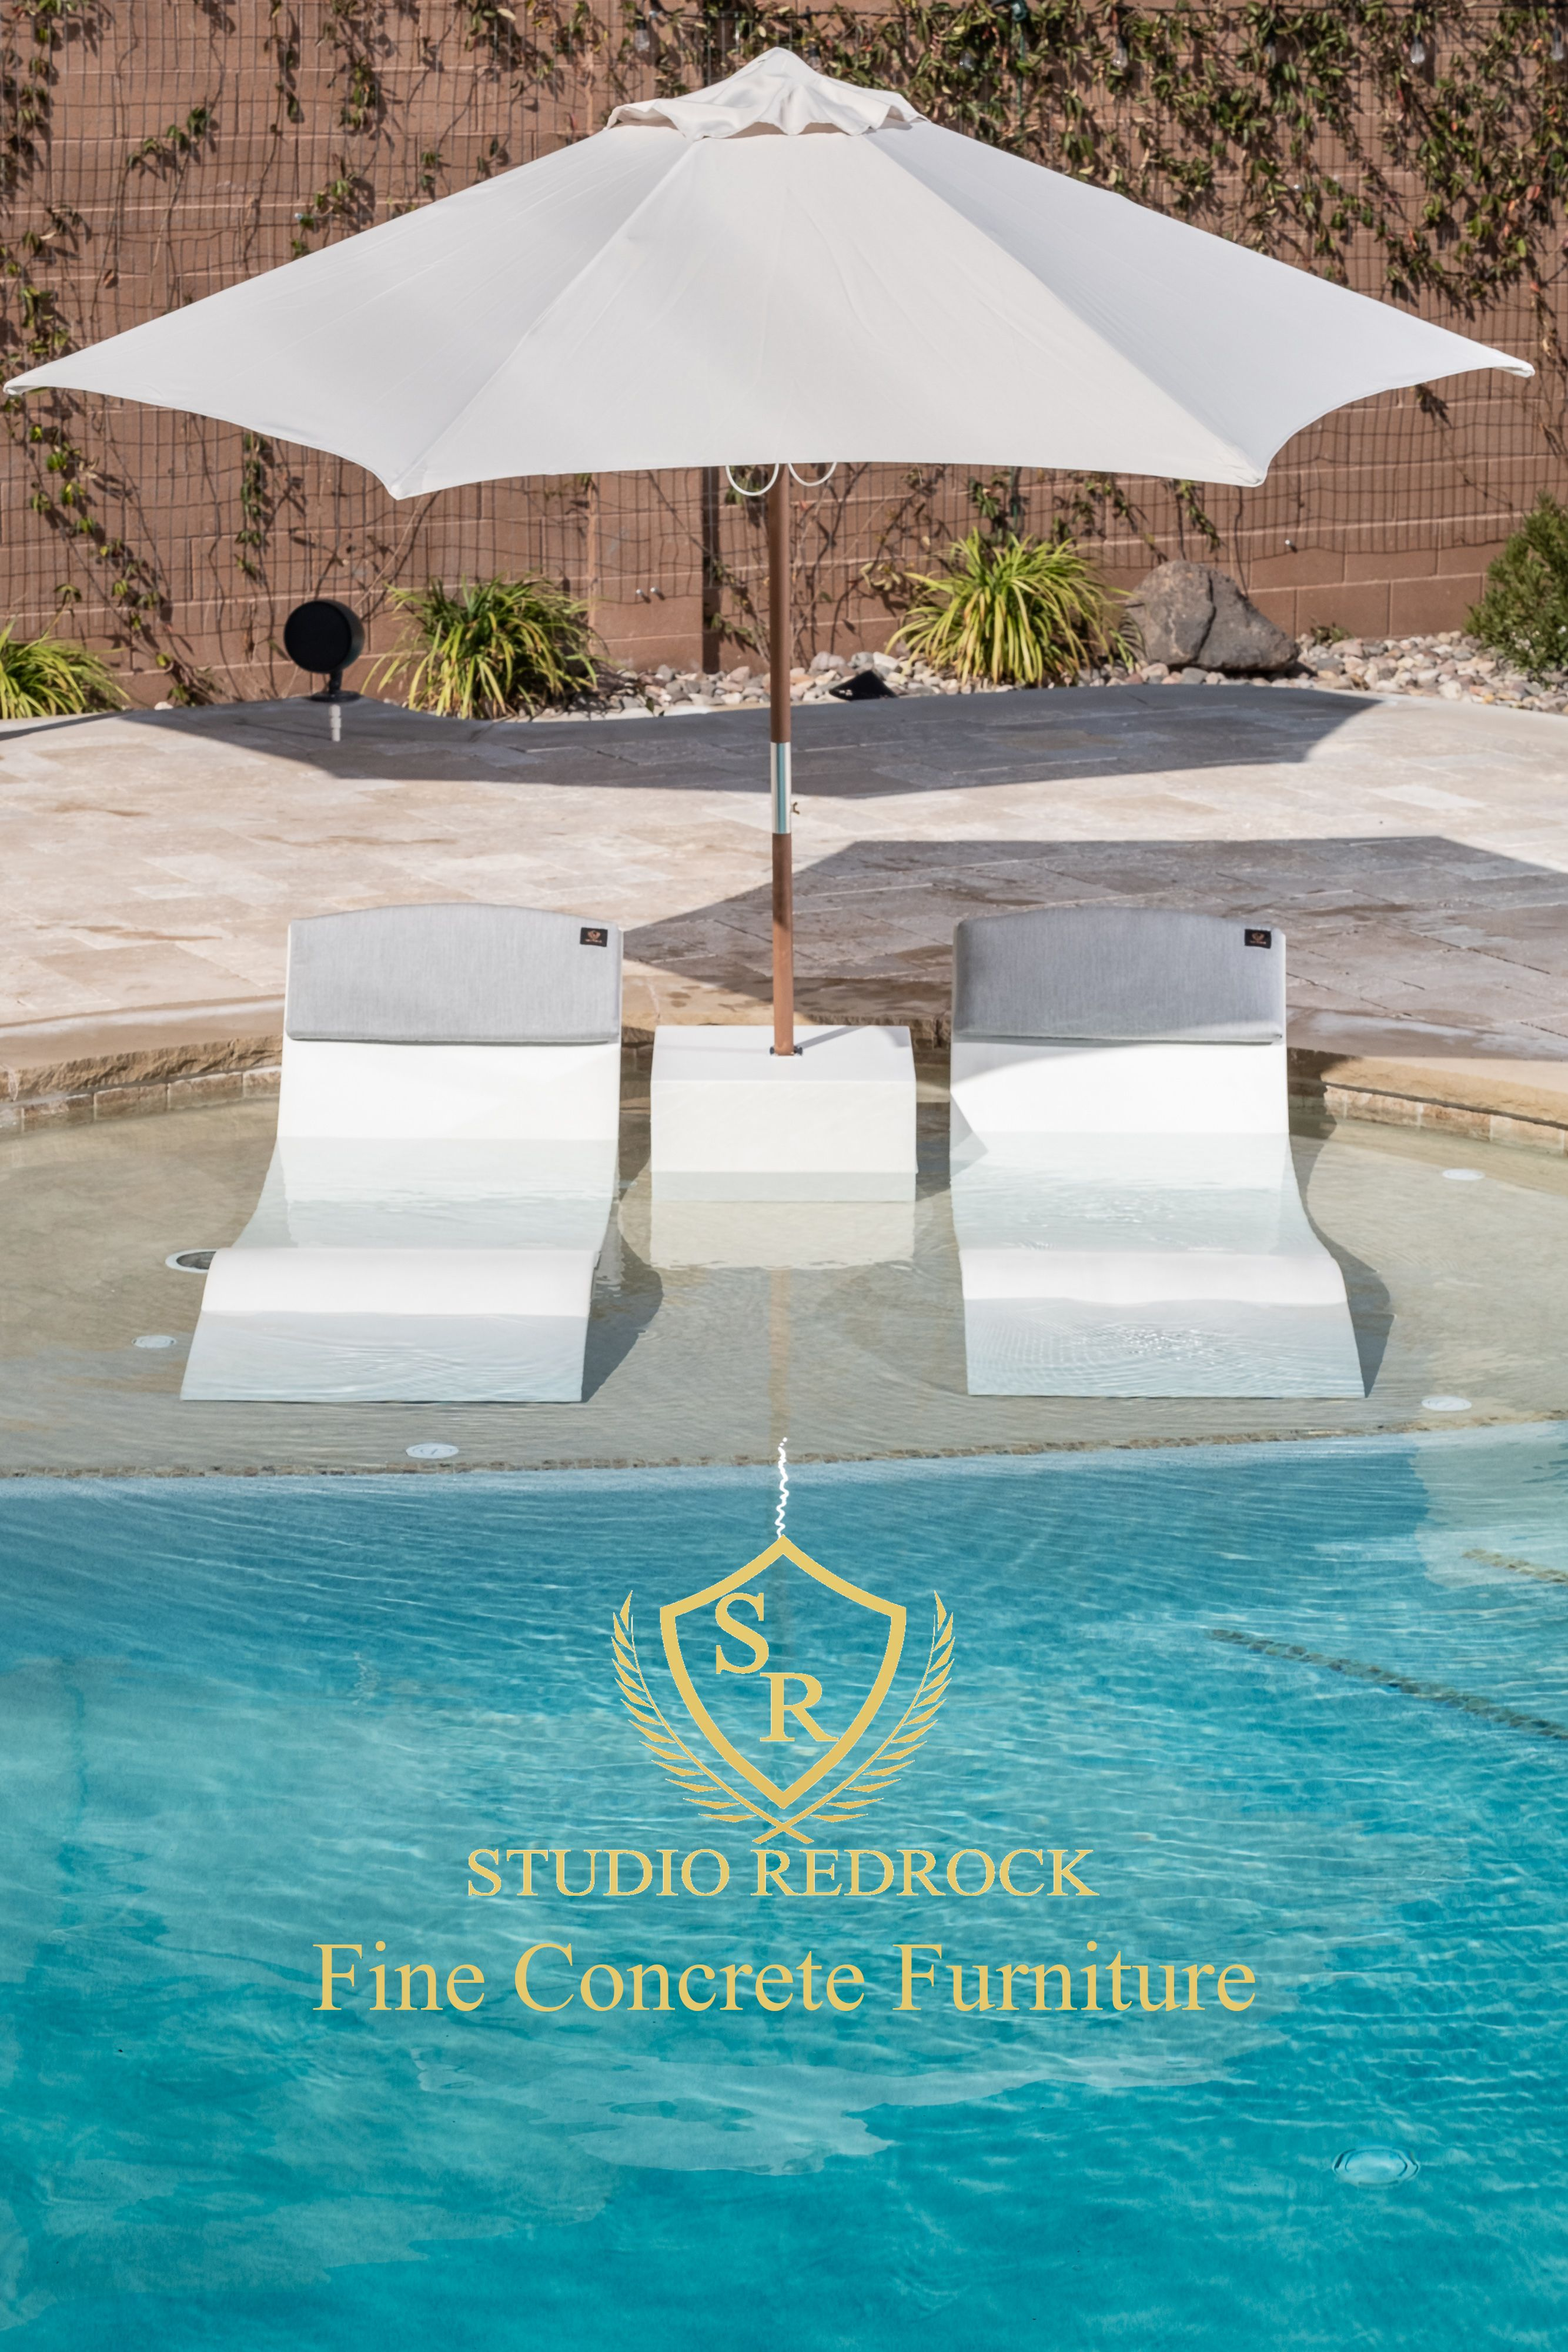 Polished Concrete Pool Lounge Chairs Omg I Cannot Believe How Amazing These Things Look Pool Lounge Chairs Concrete Pool Outside Pool Lounge chairs for inside the pool